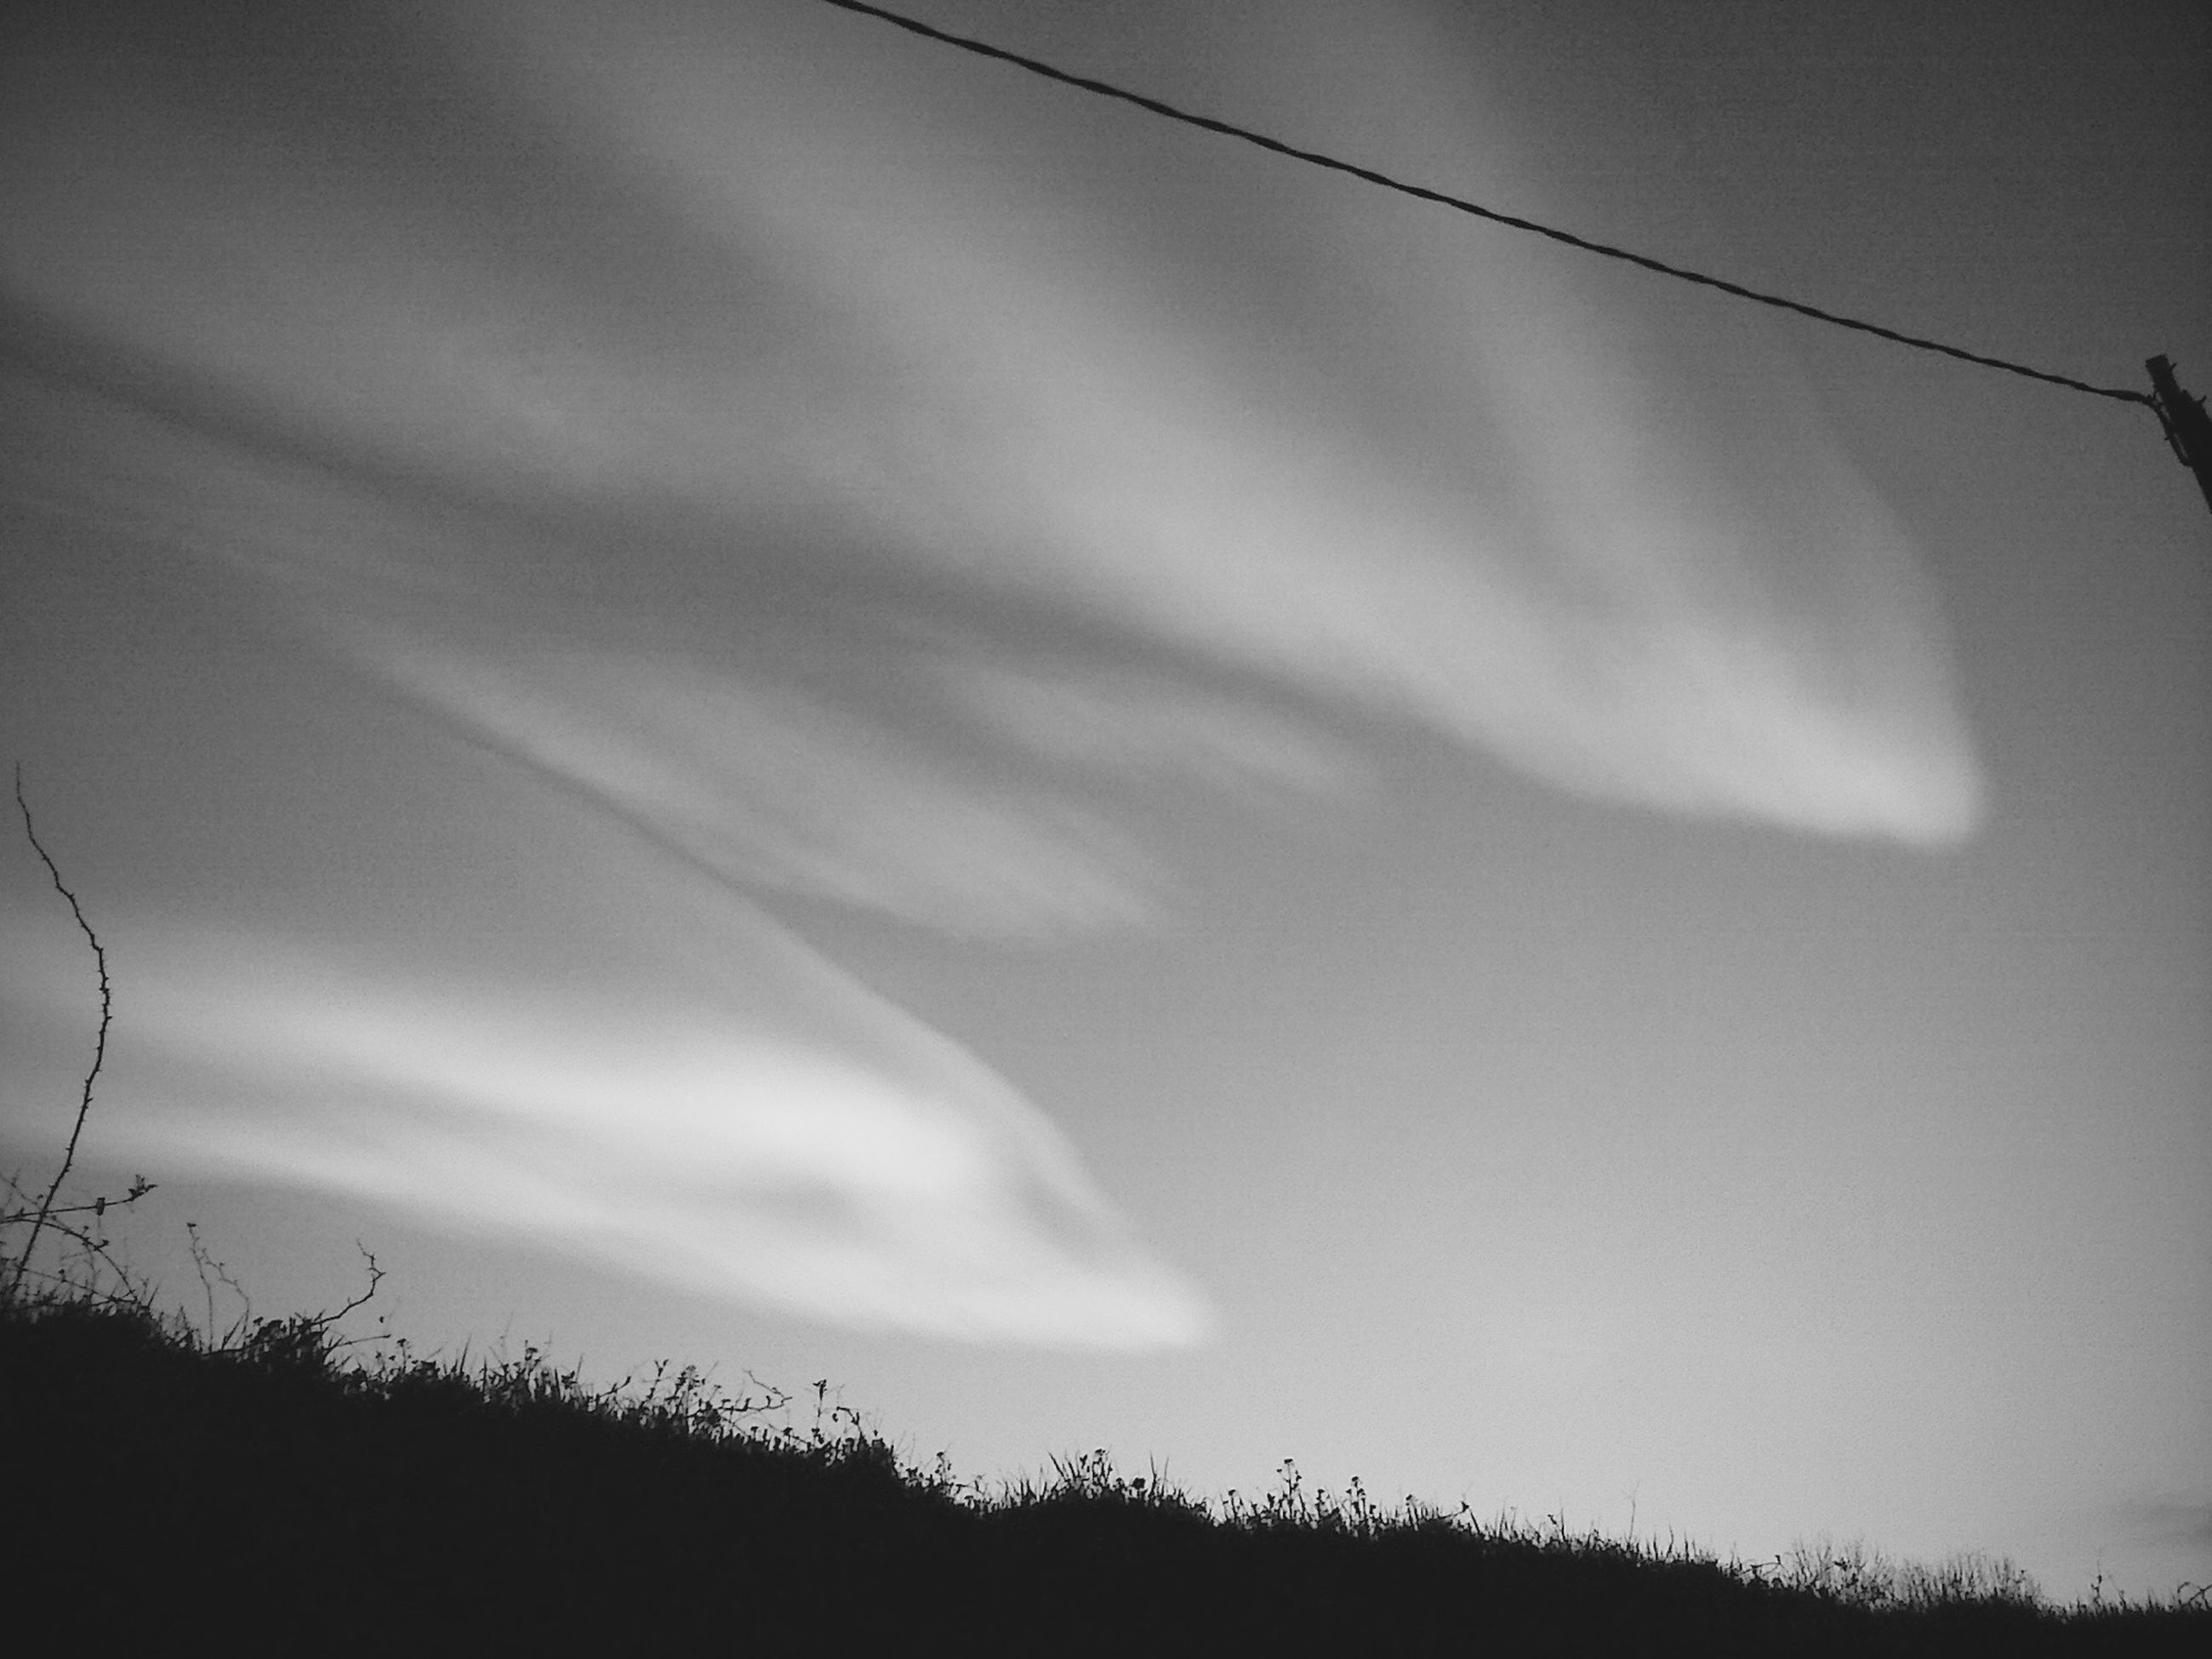 sky, tranquility, silhouette, nature, tranquil scene, plant, beauty in nature, growth, cloud - sky, low angle view, scenics, field, dusk, cloud, landscape, outdoors, no people, cloudy, sunset, tree